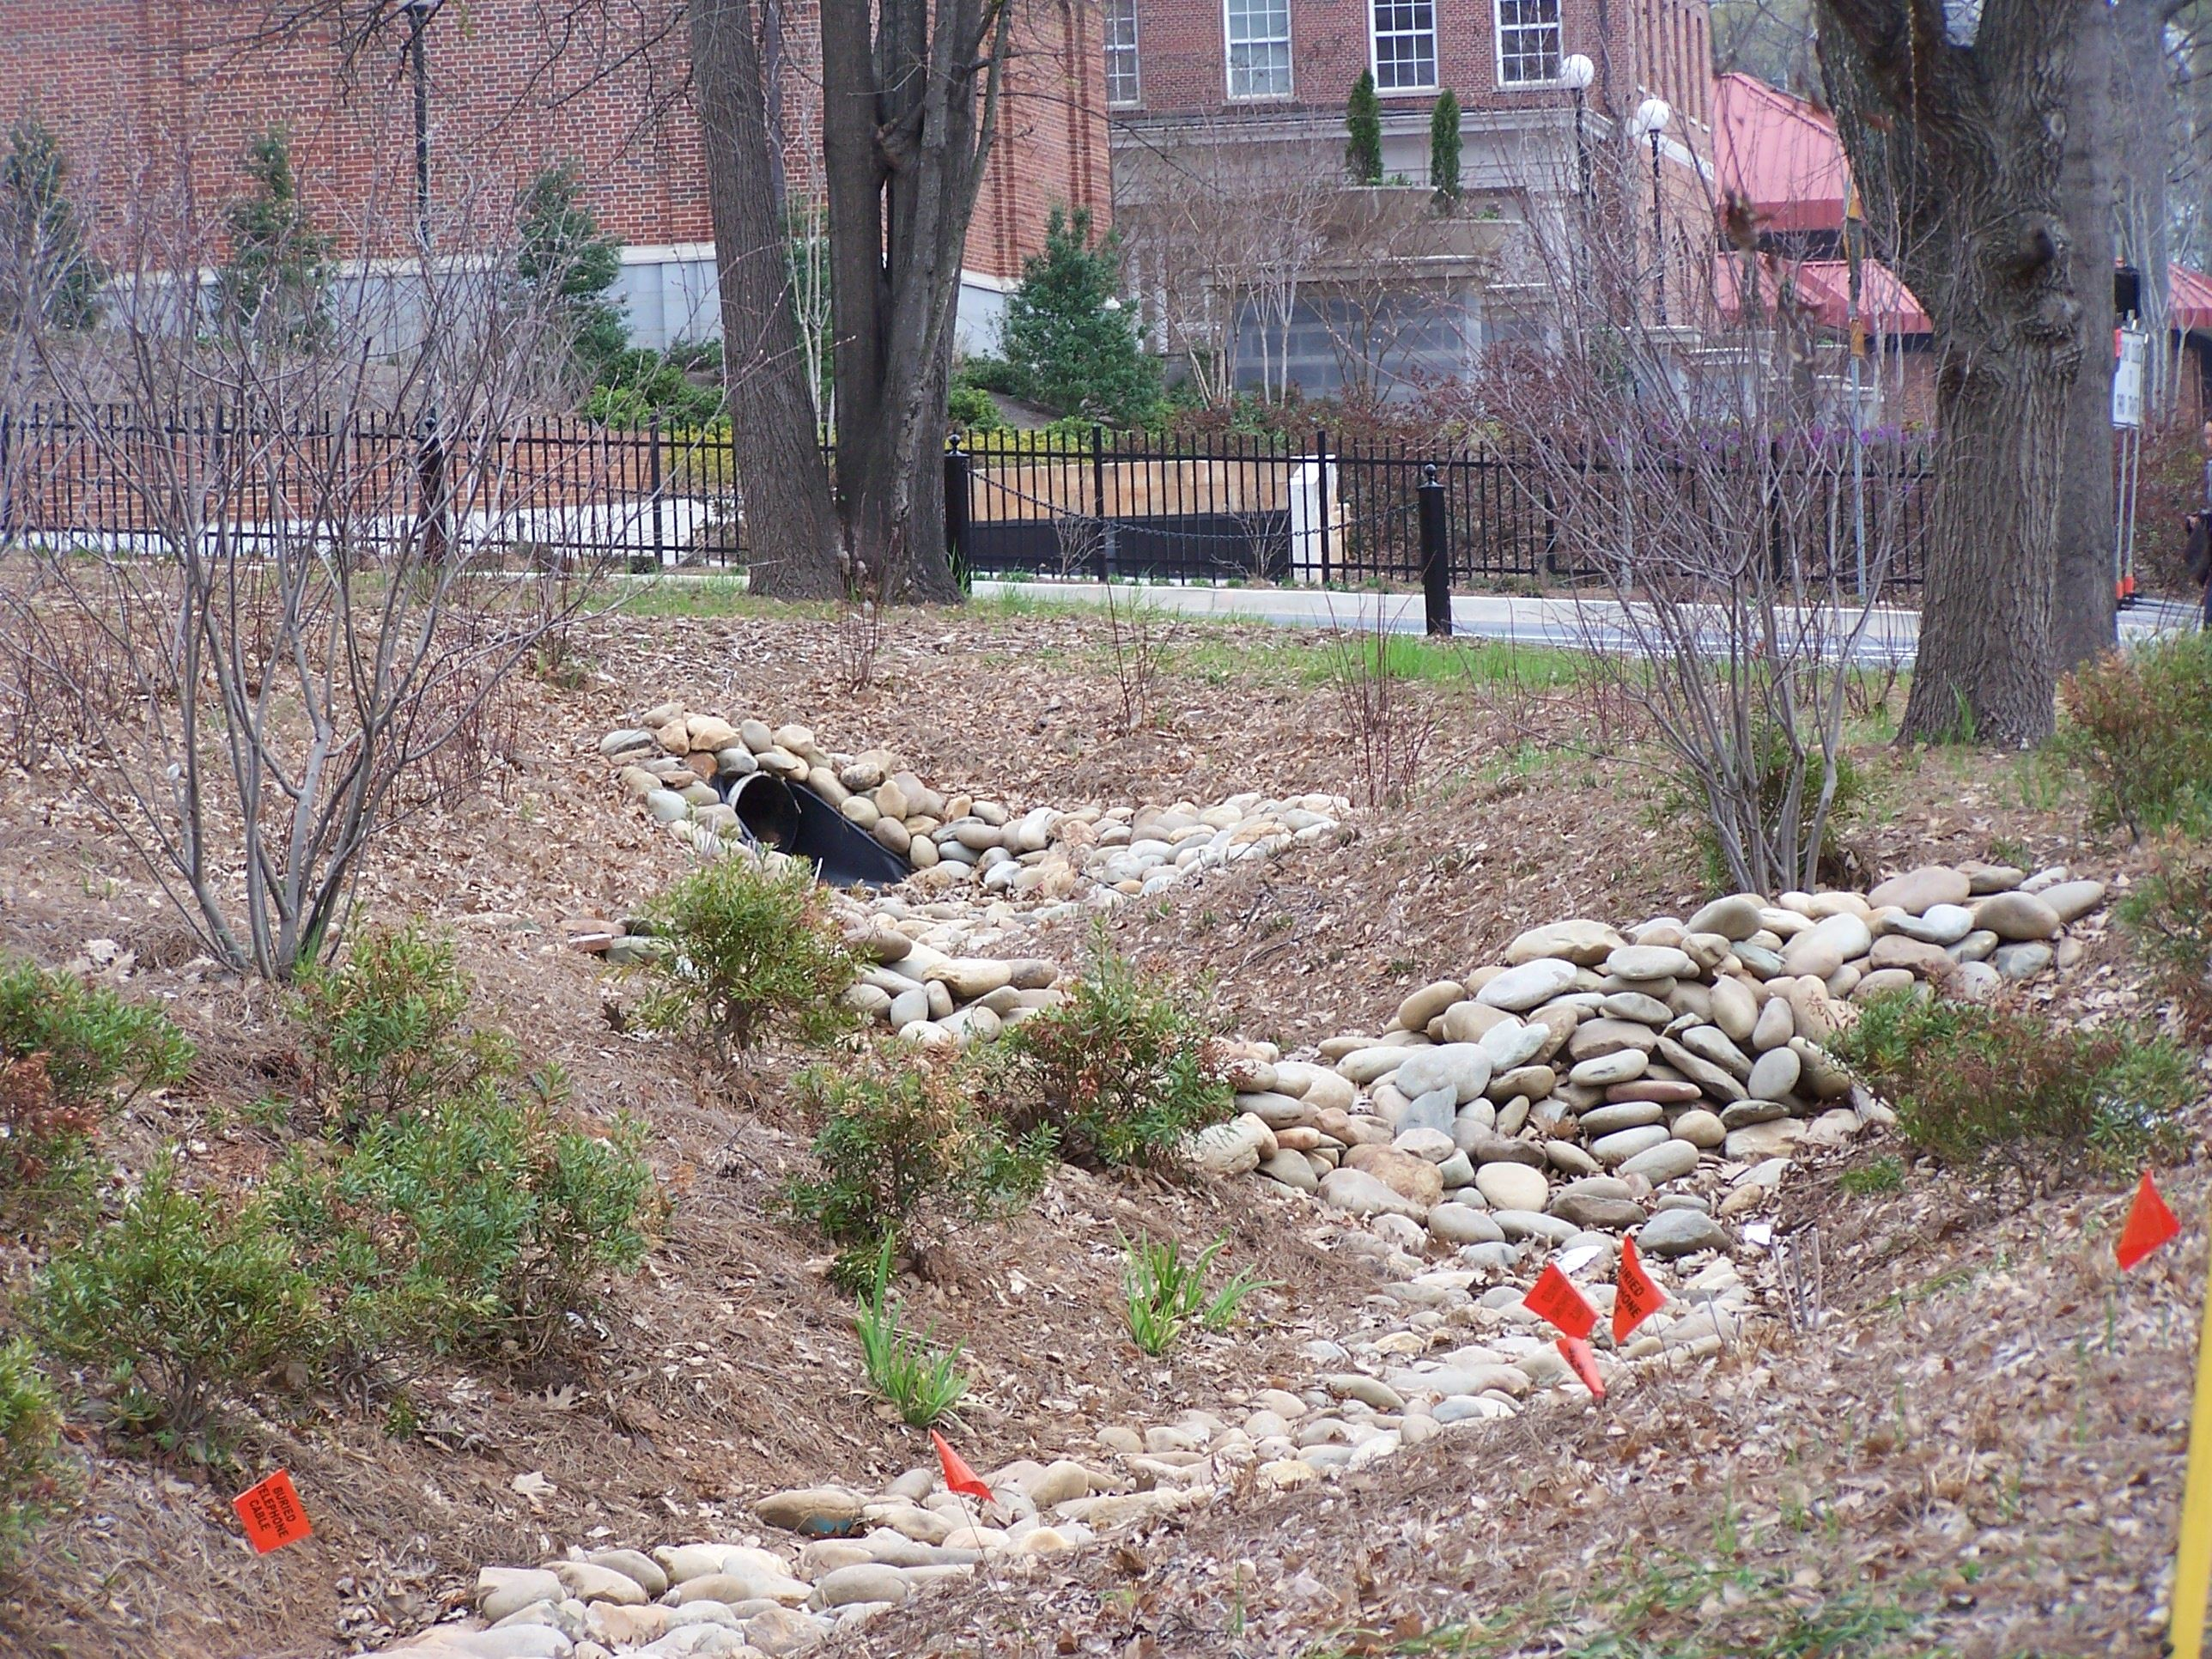 Project 8 Areawide Stormwater Improvement Program